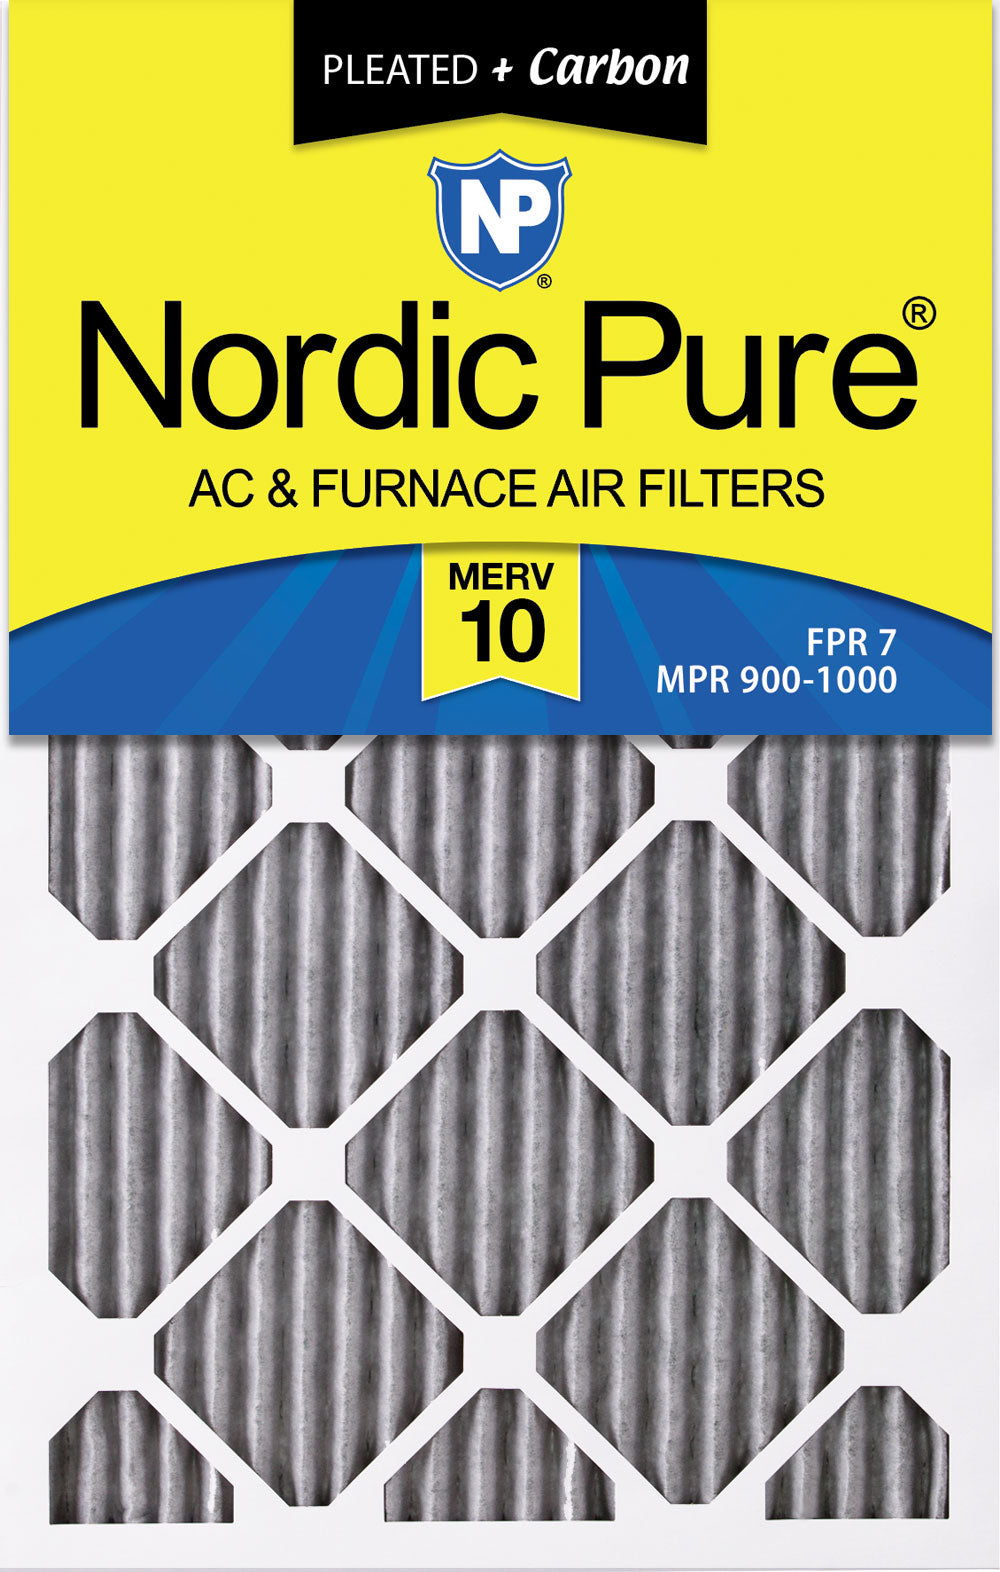 Nordic Pure 20x22/_1//4x1 Exact MERV 13 Pleated AC Furnace Air Filters 4 Pack